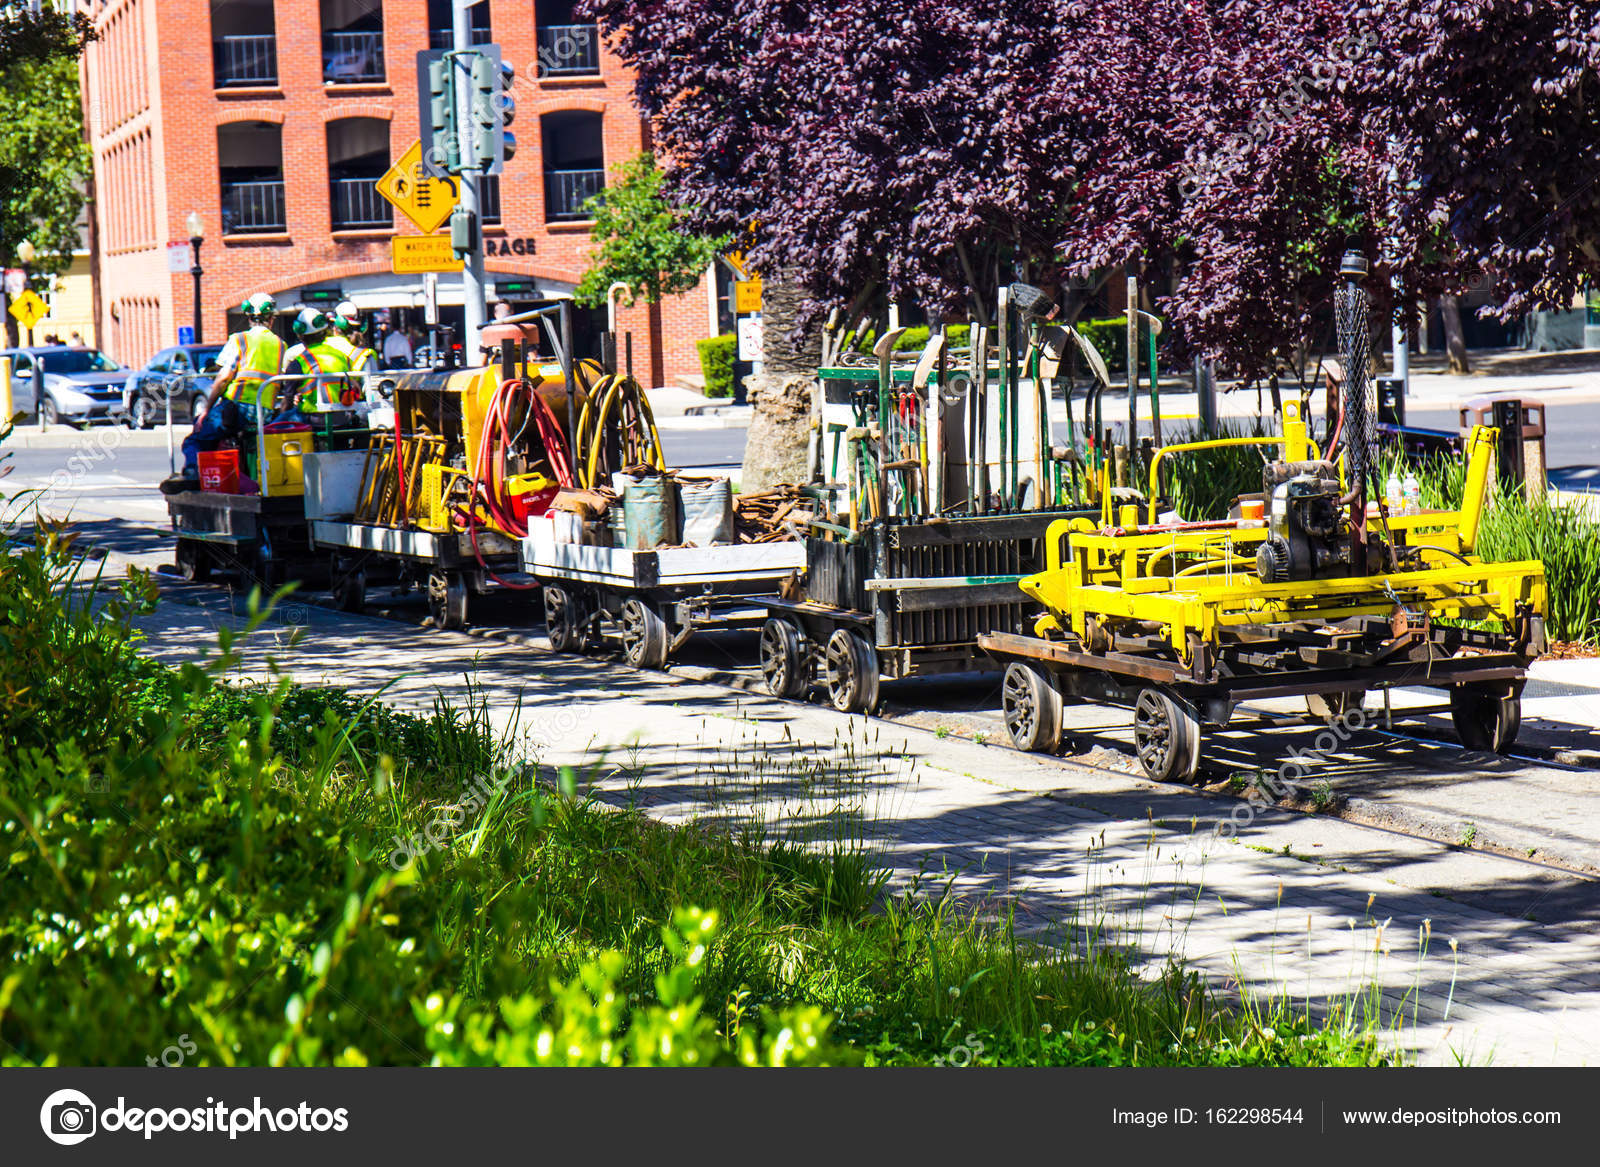 Railroad Maintenance Crew With Tools & Equipment – Stock Editorial